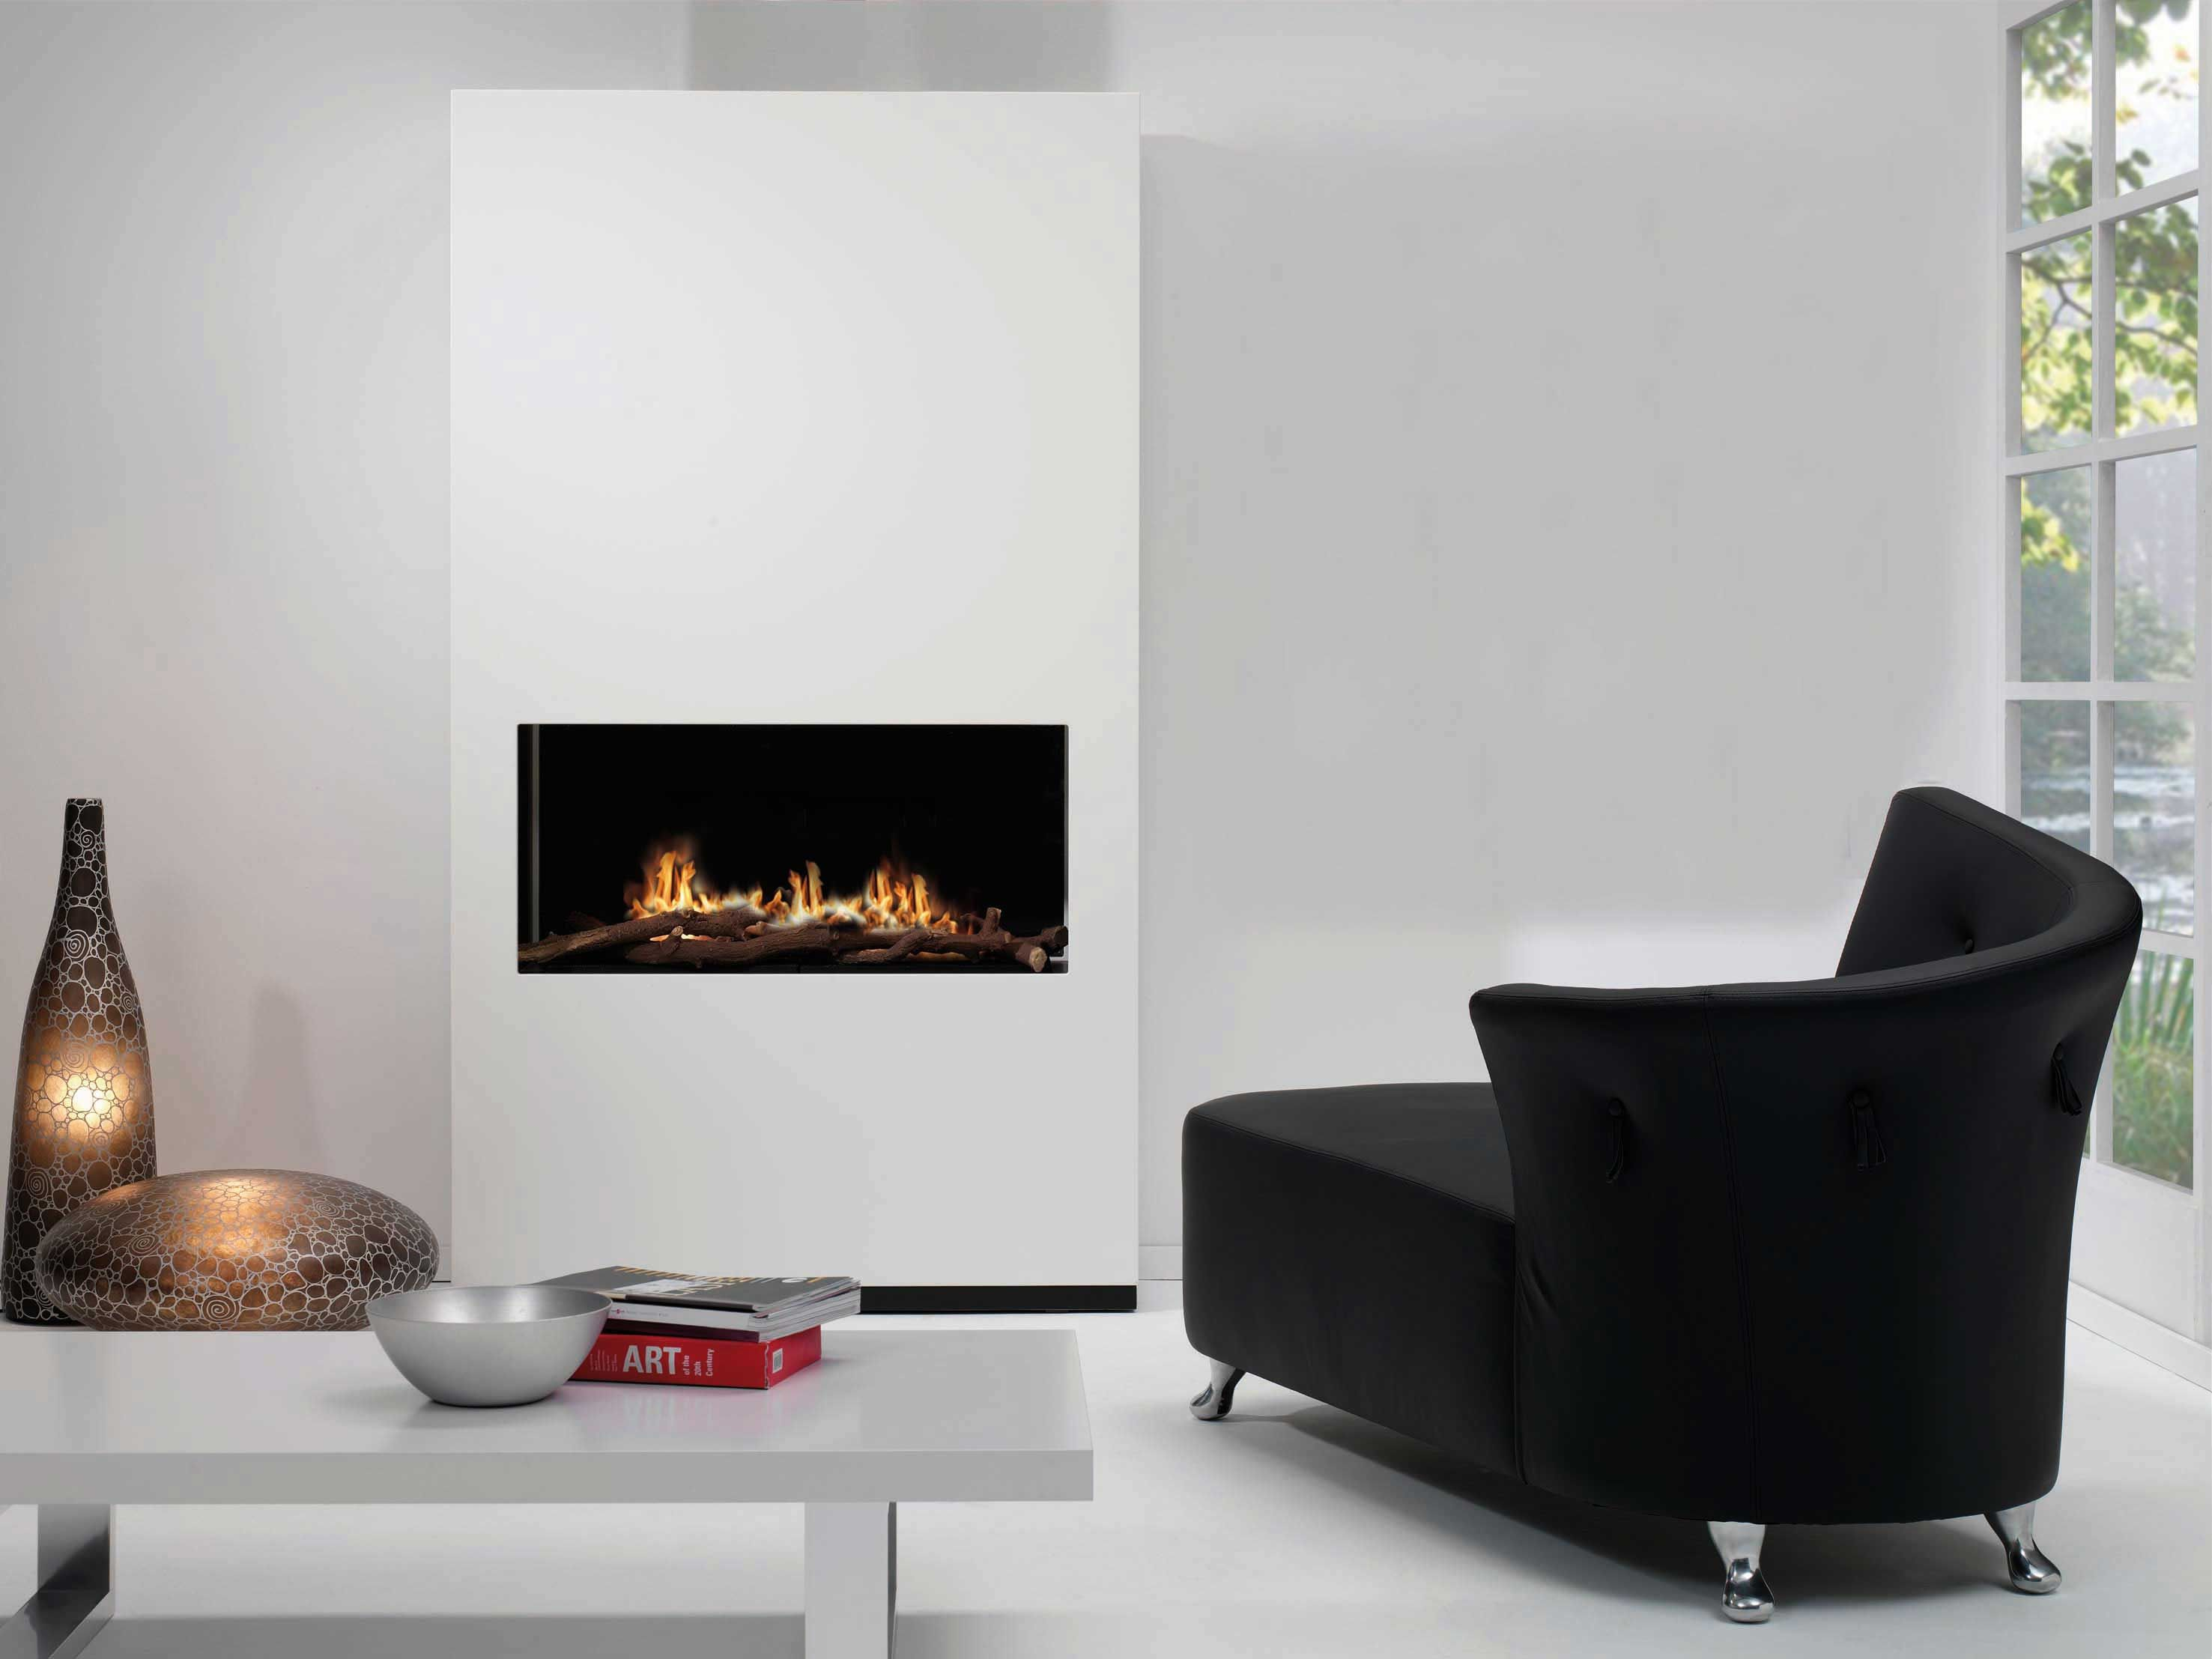 ruby fires bioethanol kamin ambiance wohnen. Black Bedroom Furniture Sets. Home Design Ideas